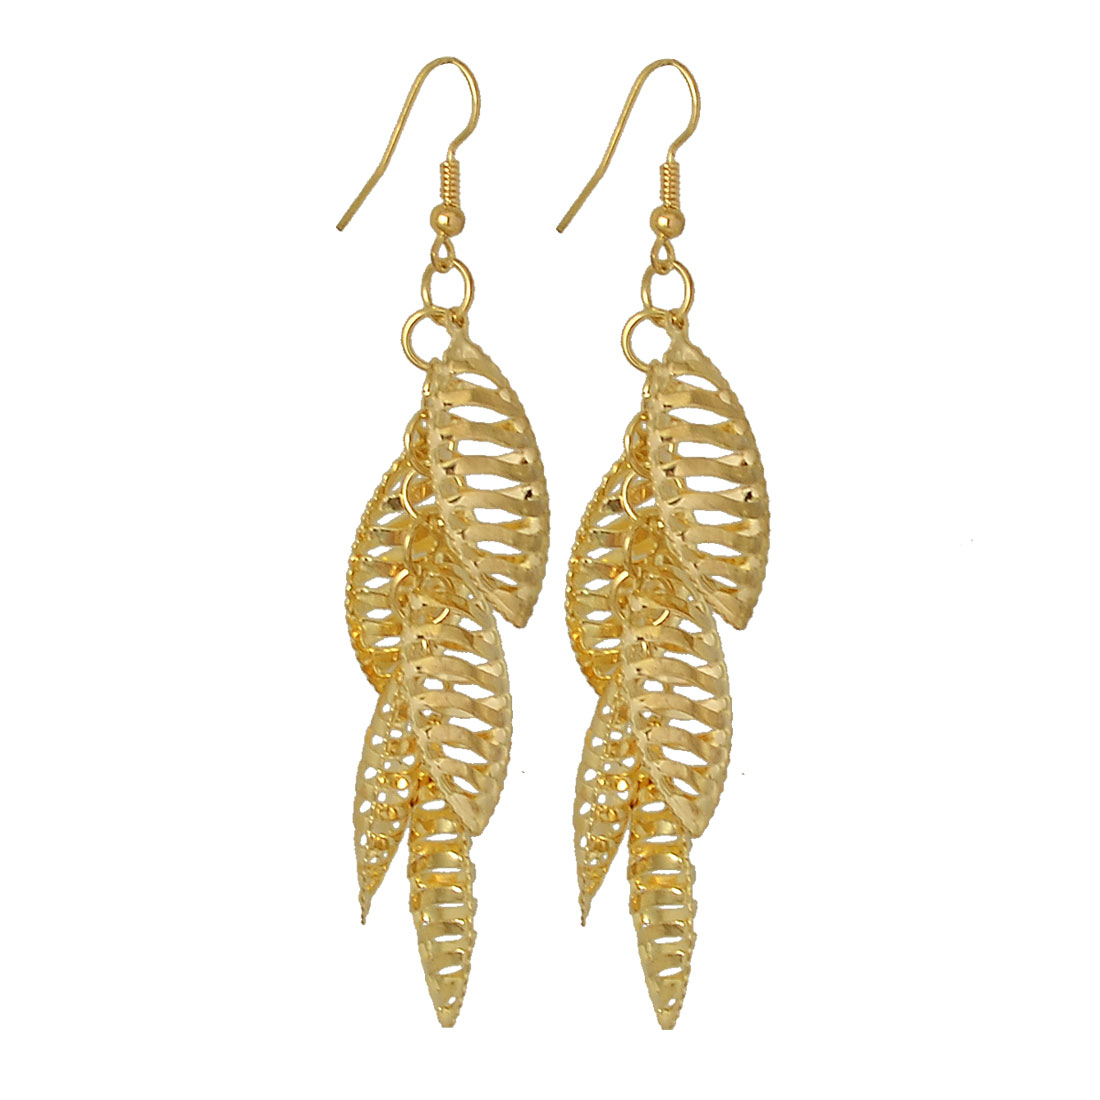 Gold Tone Hollow Out Leaf Pendant Dangle Earrings for Lady Woman